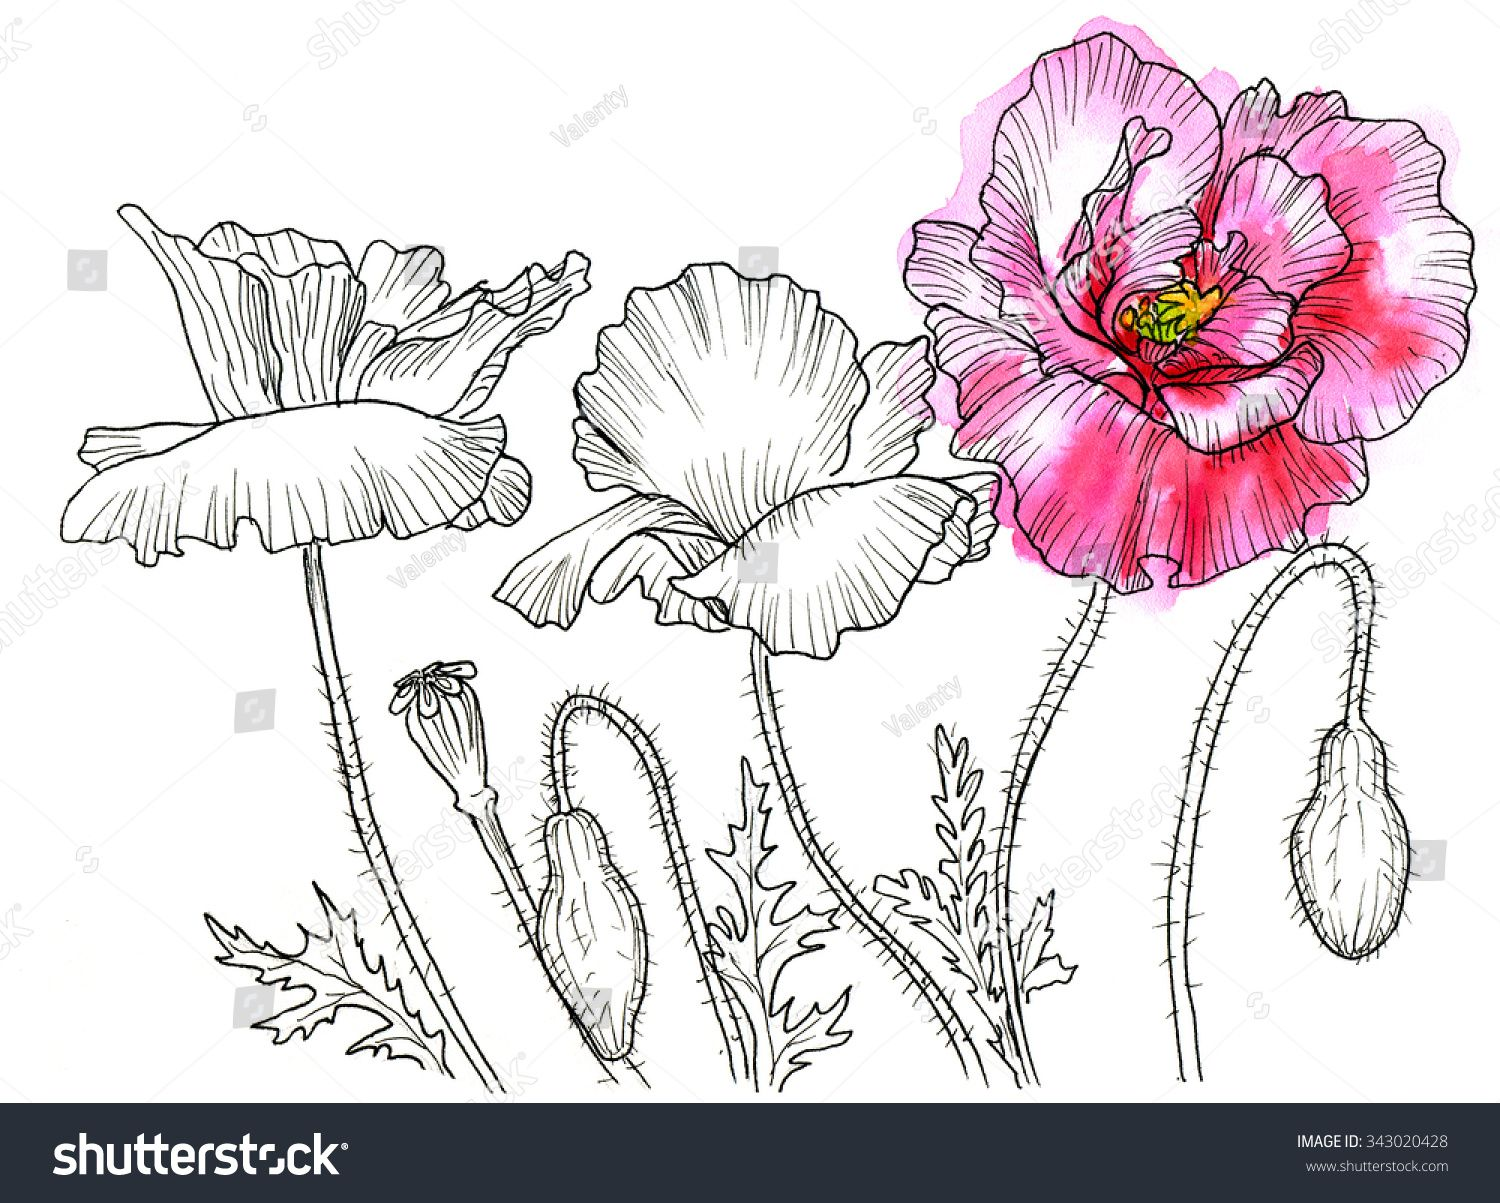 Line Ink Drawing Of Flower Poppy Black Contour On White Background